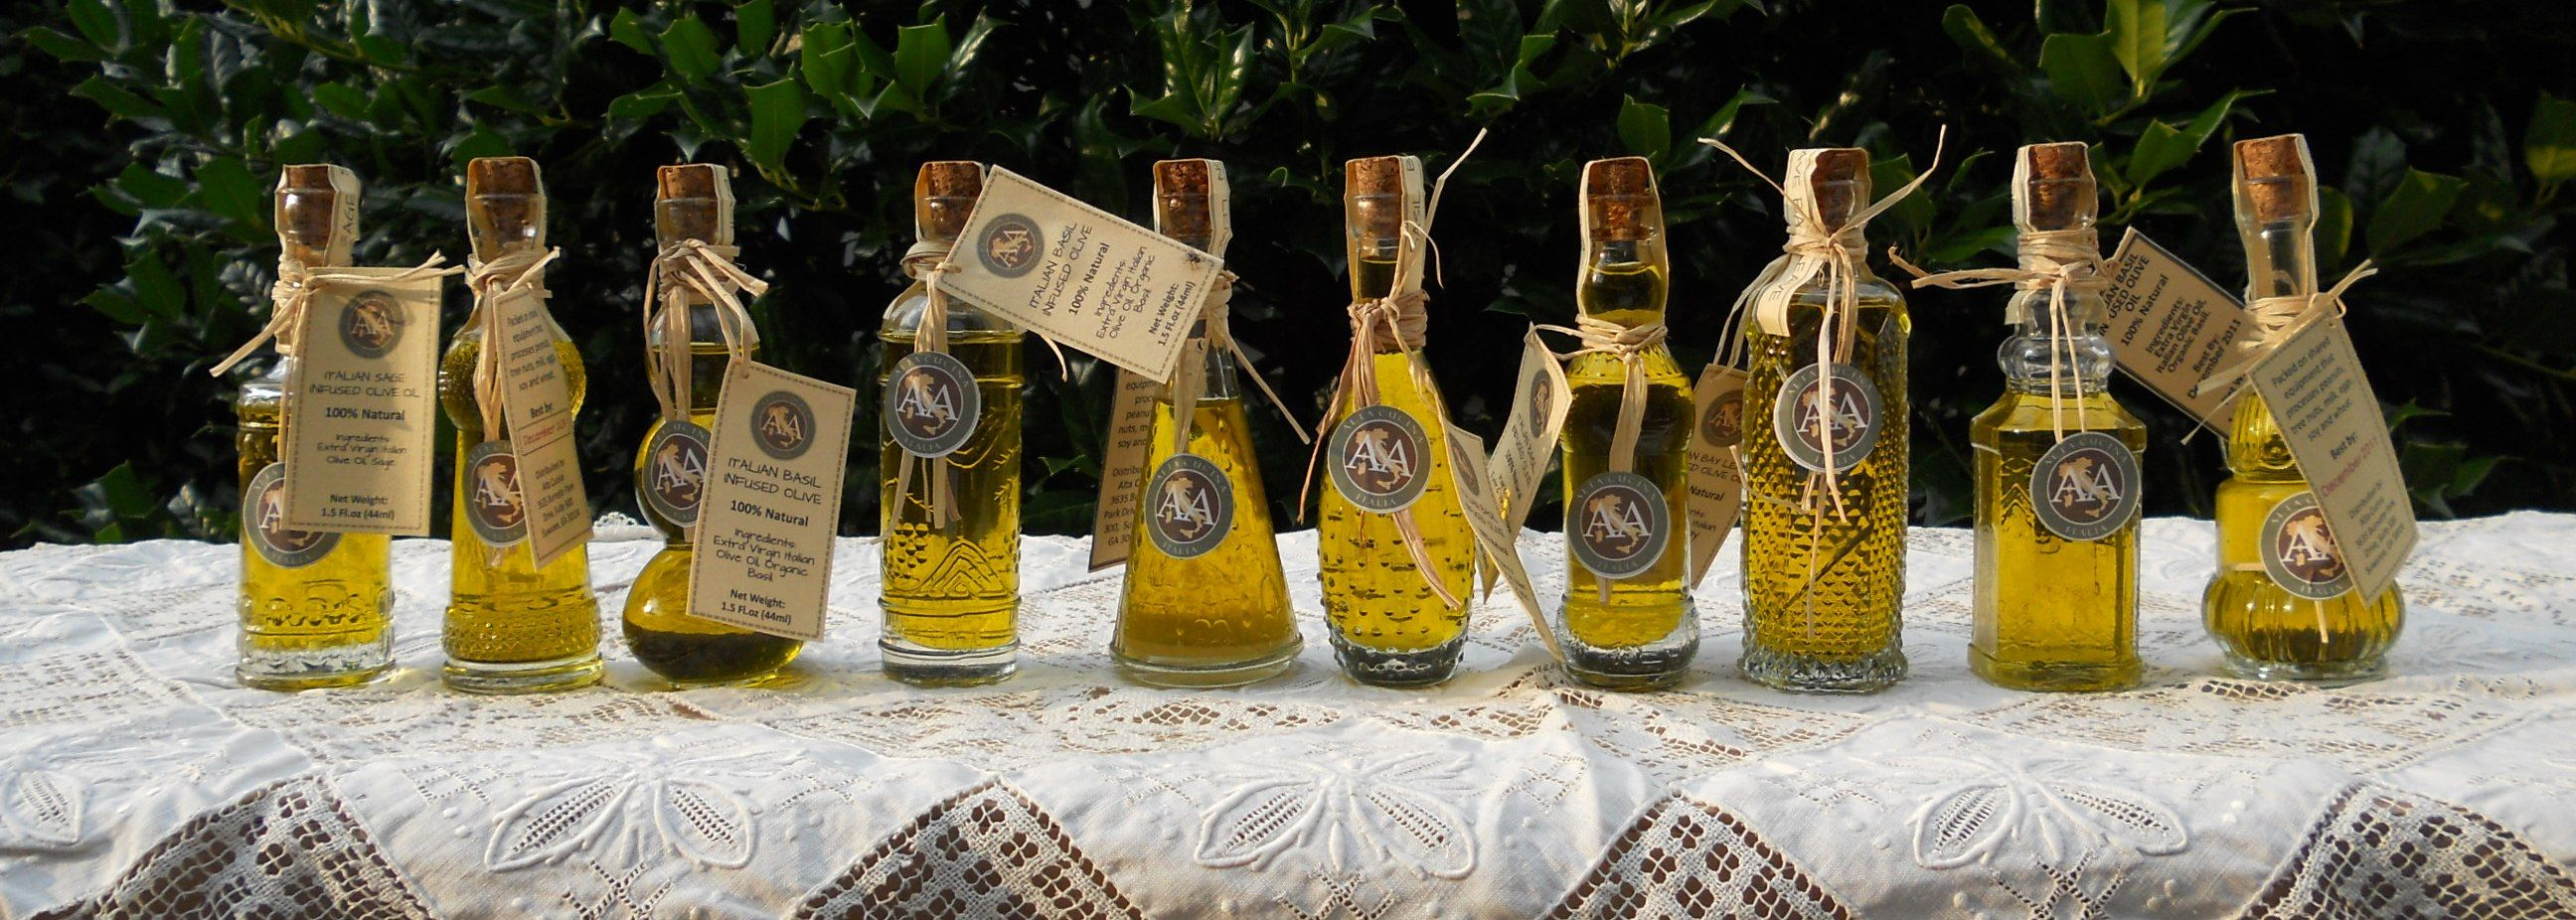 Italian Design Gifts Perfect Italian Theme Wedding Favors From A Anda Alta Cucina